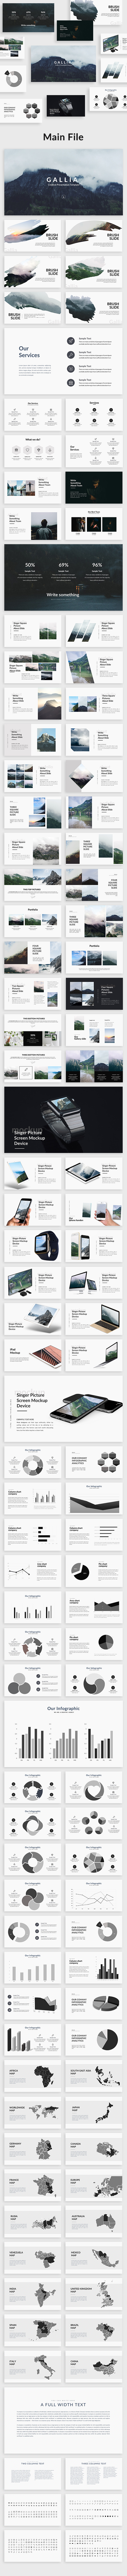 Gallia - Creative Powerpoint Template - Creative PowerPoint Templates